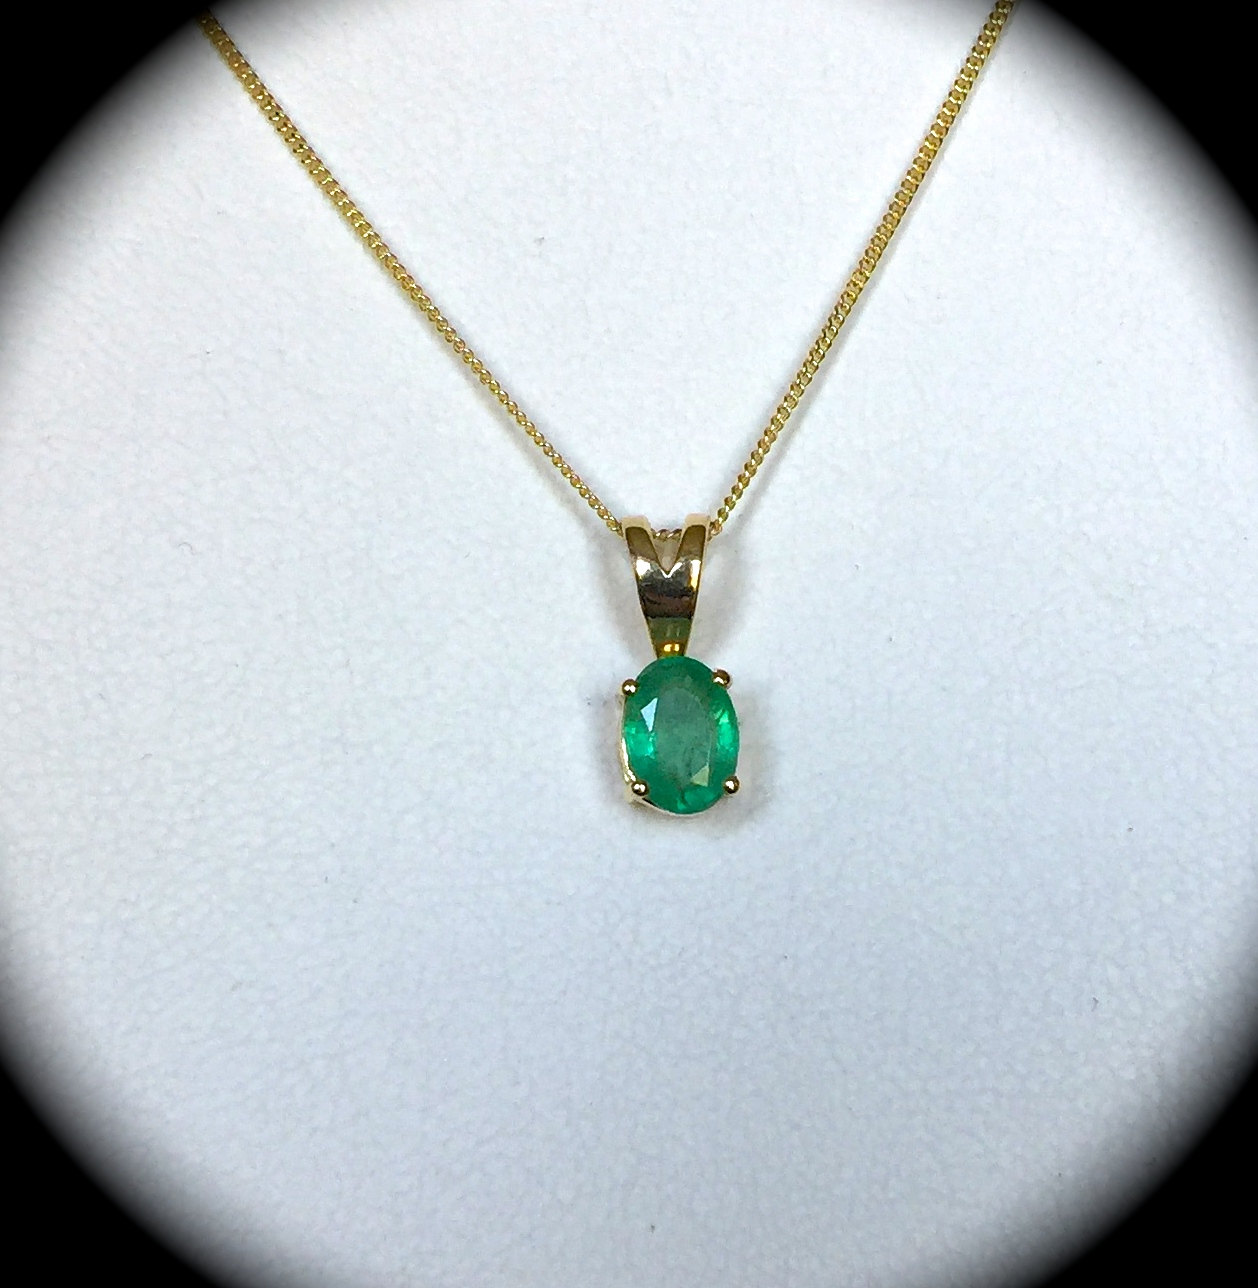 pendants dhgate product natural artificial store ruyi online s piece pendant with necklaces carving jewelry emerald com on jade